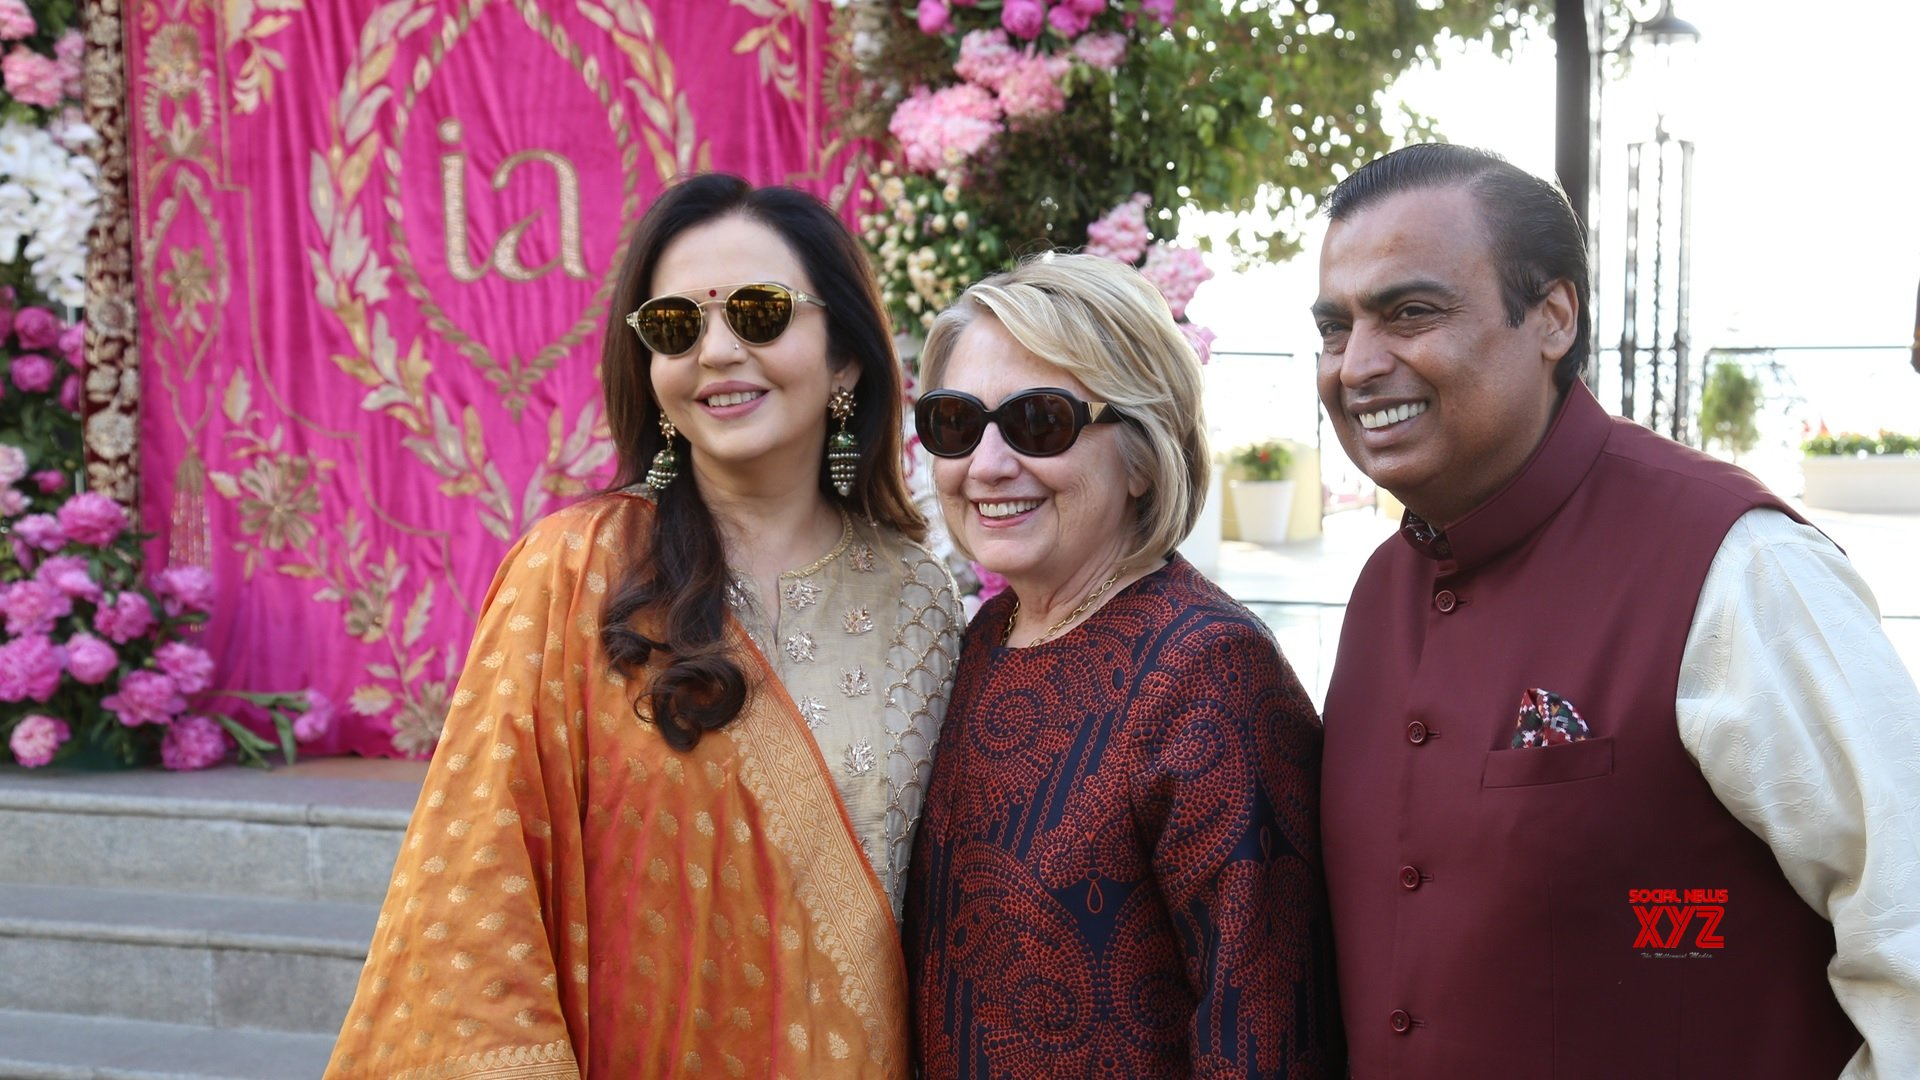 Udaipur: Isha Ambani & Anand Piramal's pre wedding ceremonies - Hillary Clinton being received by Mukesh Ambani, Nita Ambani #Gallery